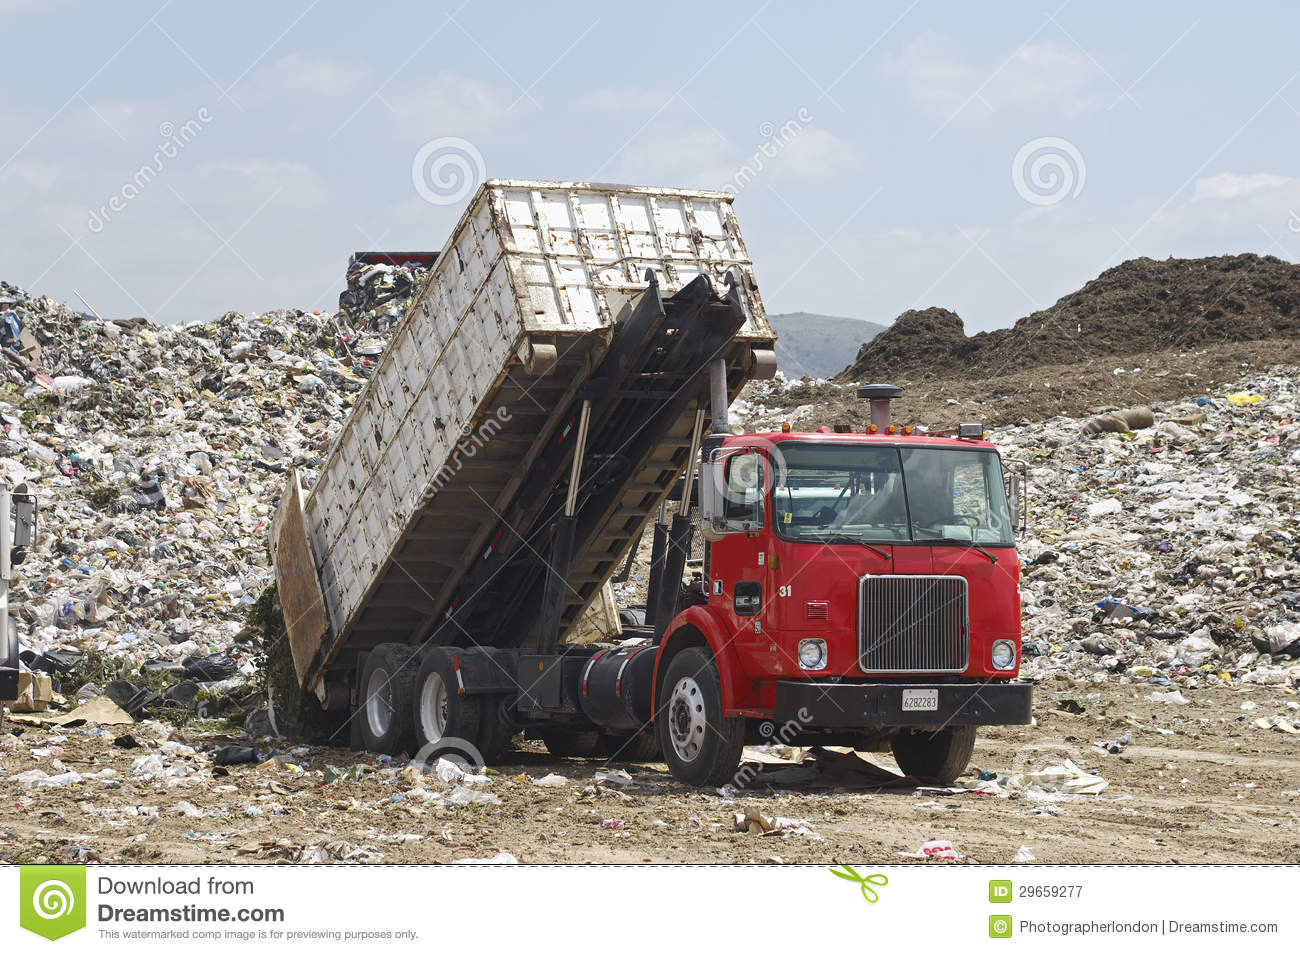 Truck Unloading Garbage At Site